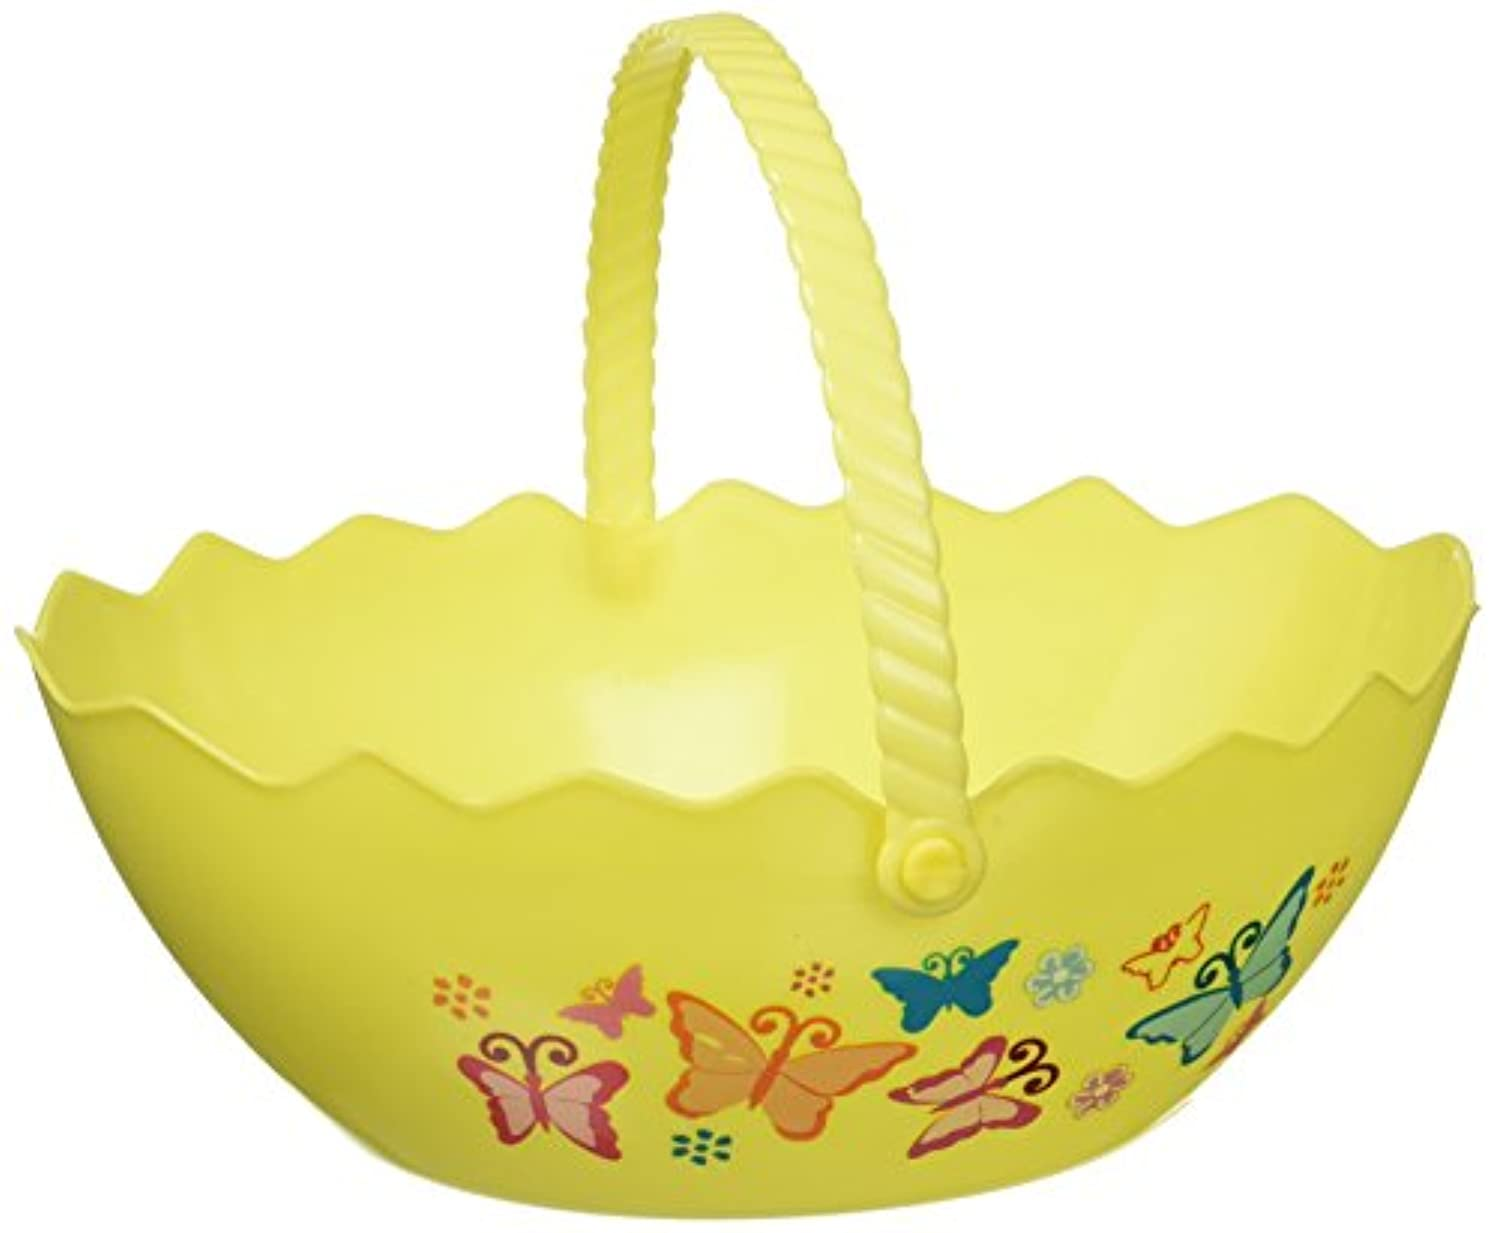 Kole Imports HX126 Egg Shape Printed Easter Basket Multicolor